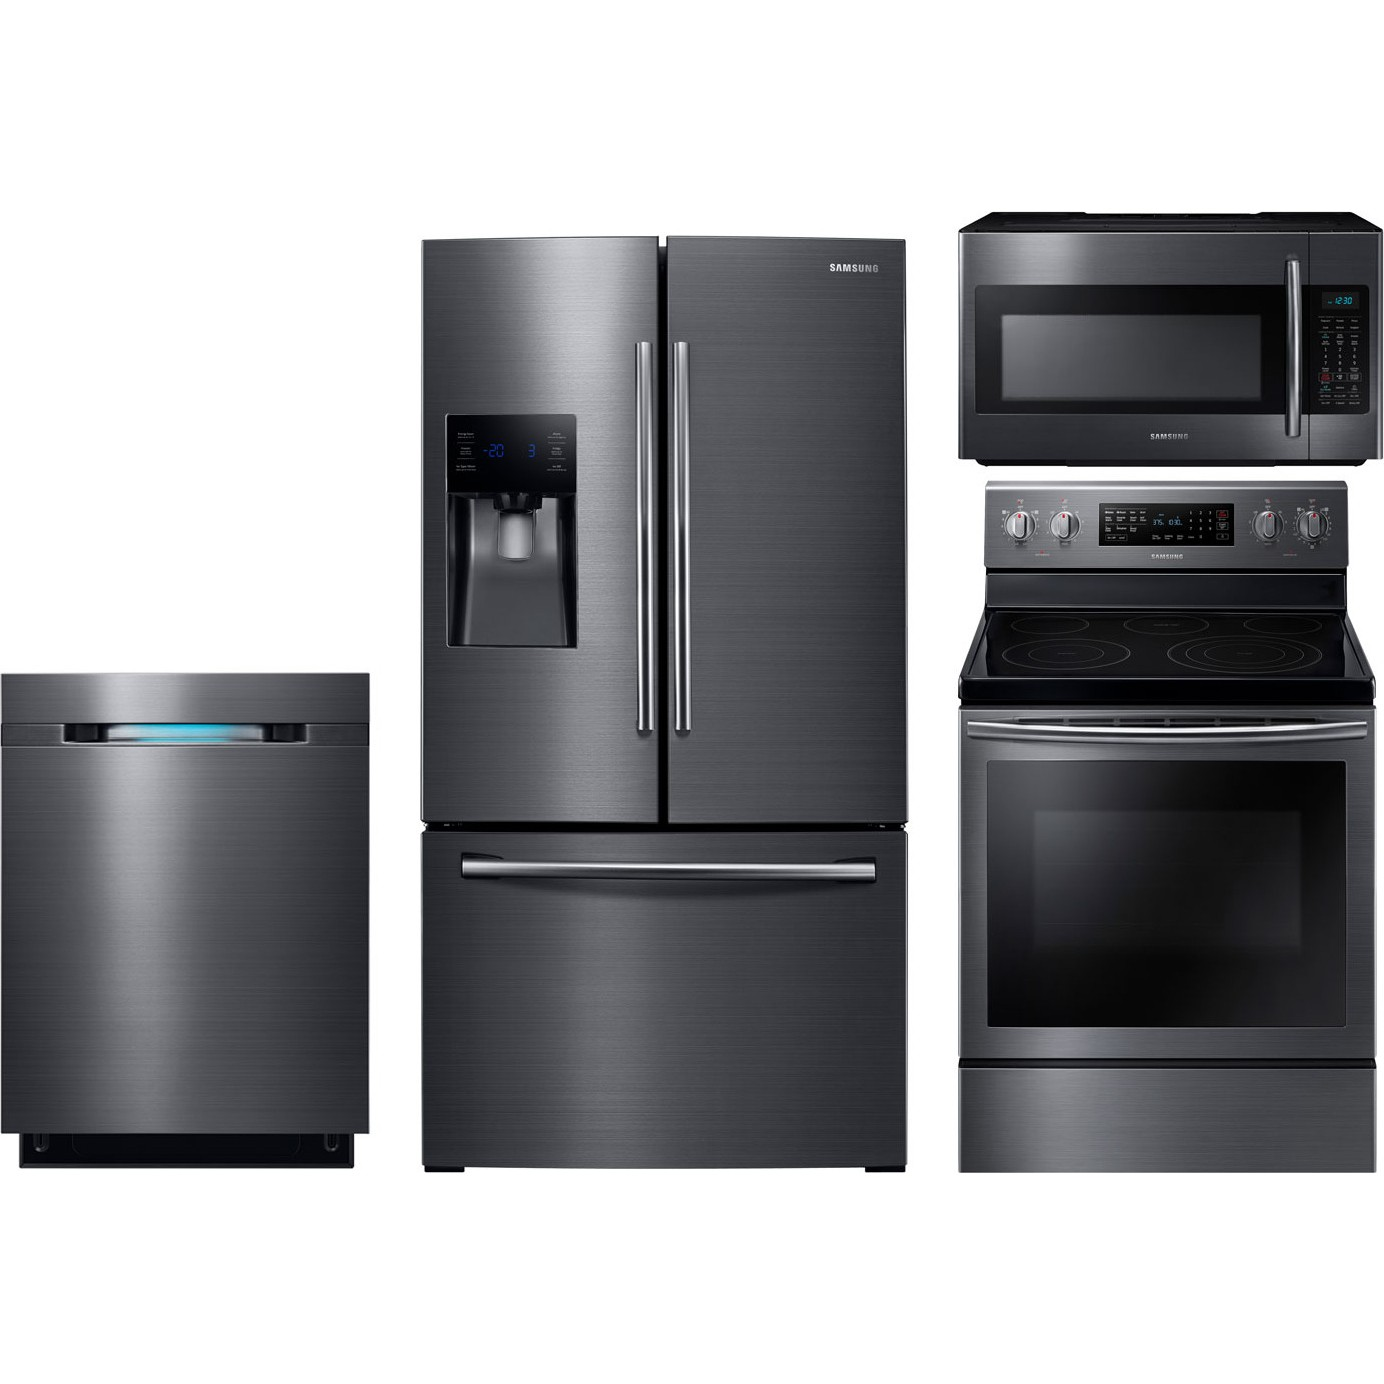 Kitchenaid 4 Piece Kitchen Appliance Package With Electric: Samsung 4-Piece Kitchen Package With NE59J7630SG Electric